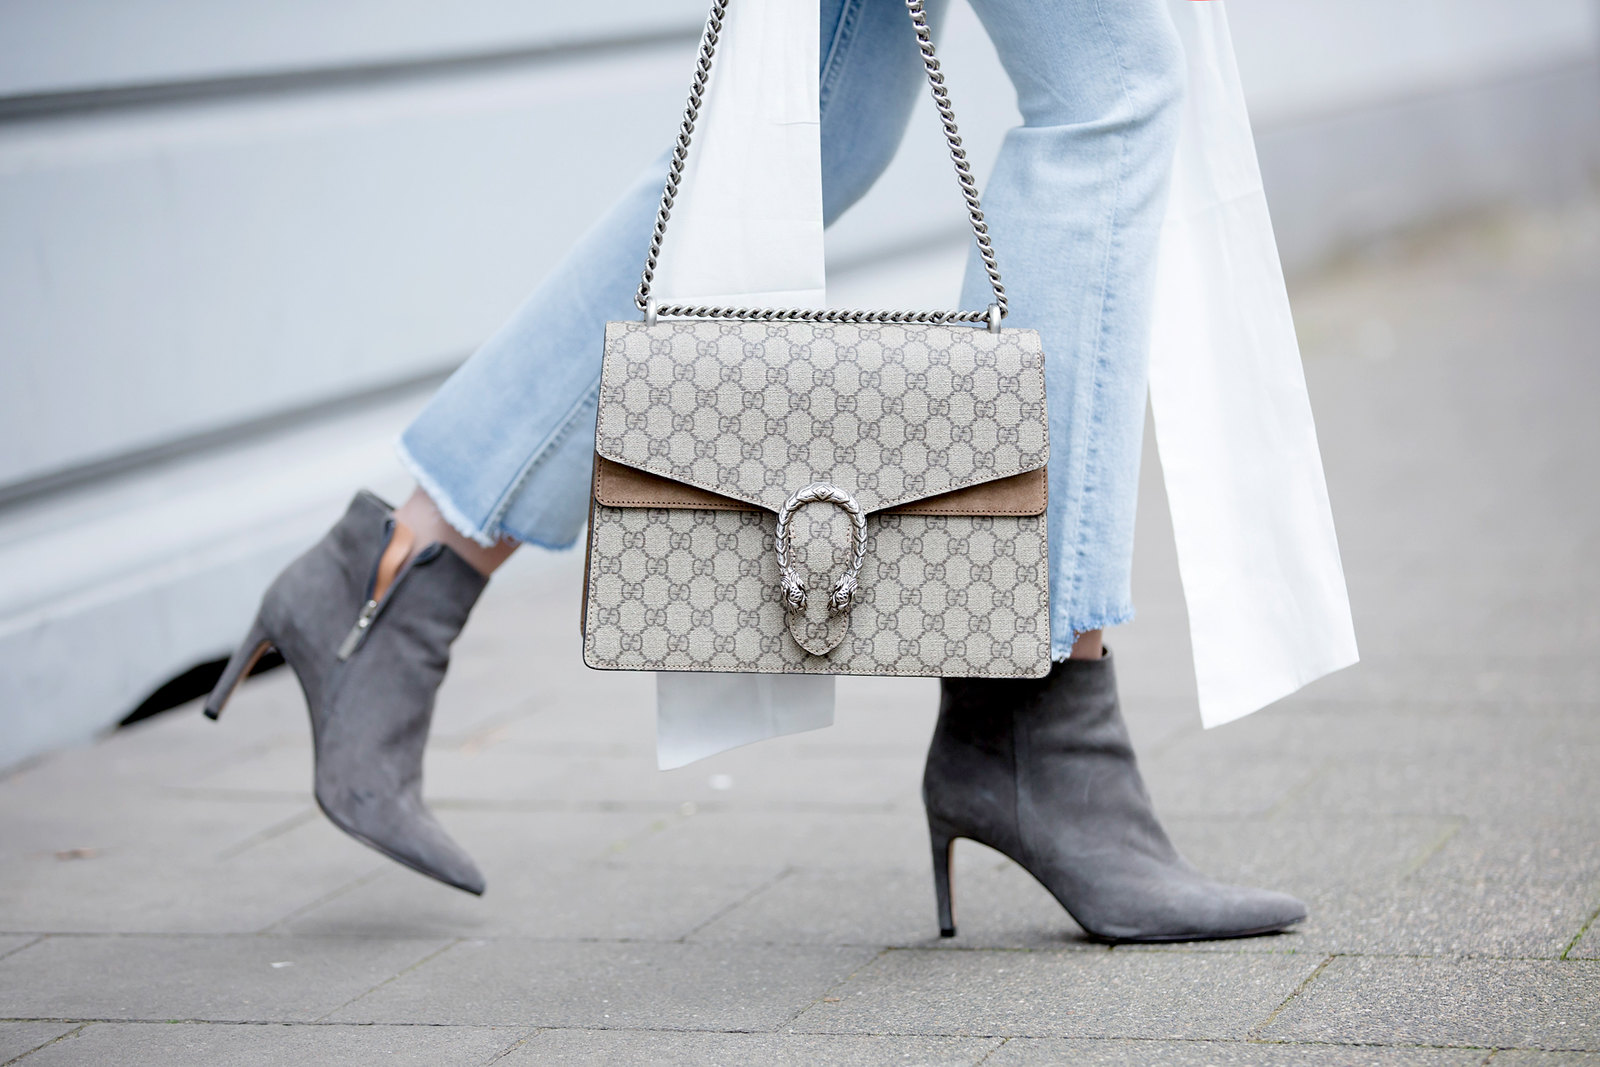 26d6b6b8a508 maritime big sleeve blouse chic gucci dionysus bag flared jeans scarf  sunglasses les specs sacha heels